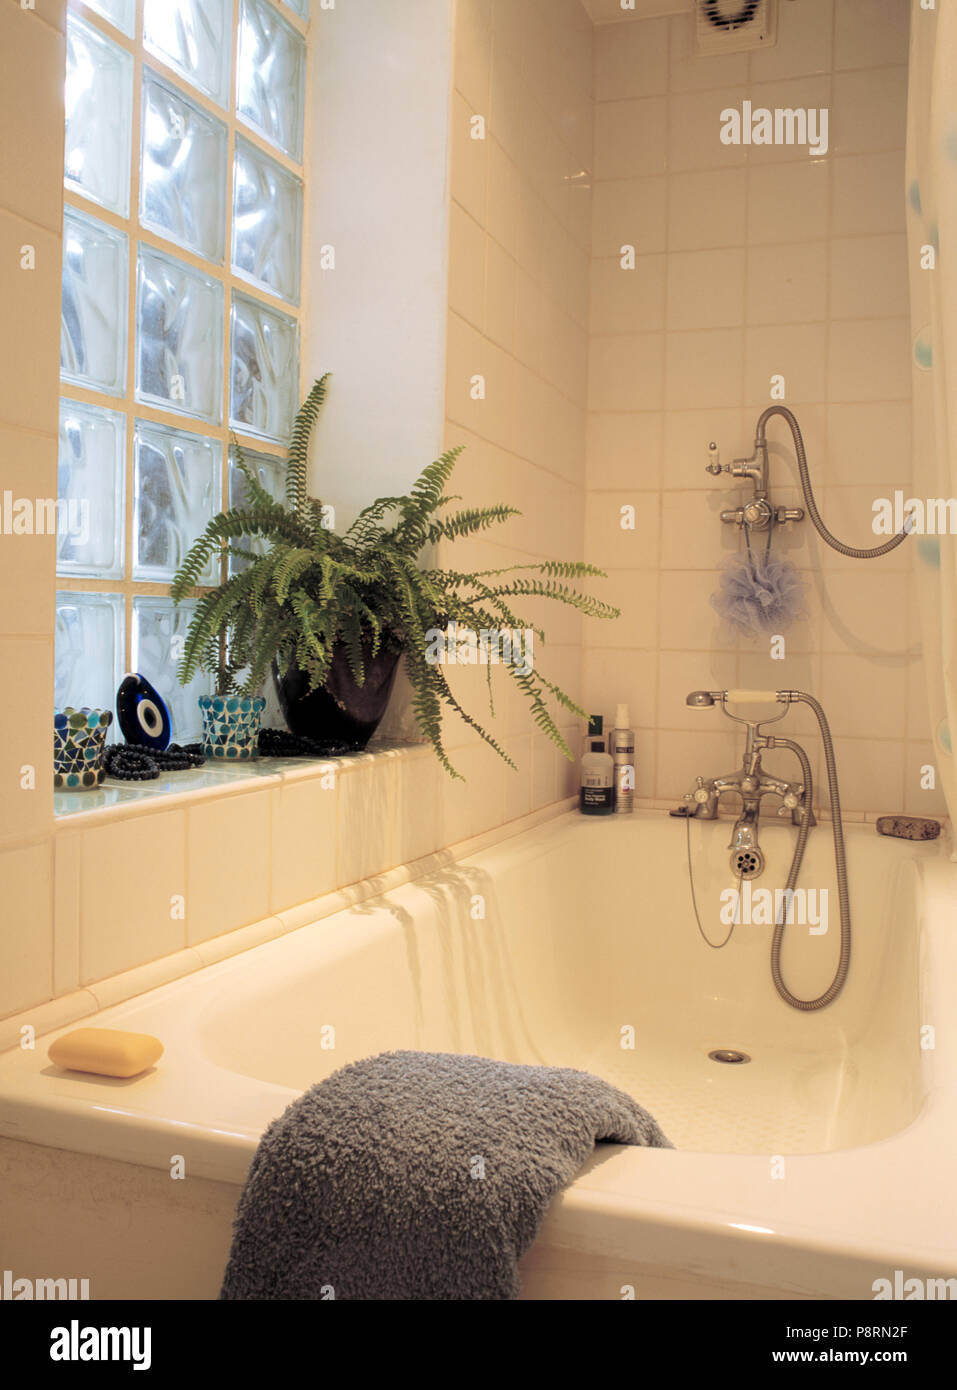 decorative glass block borders for a shower wall or windows.htm bath with chrome shower in small white tiled bathroom with boston  shower in small white tiled bathroom